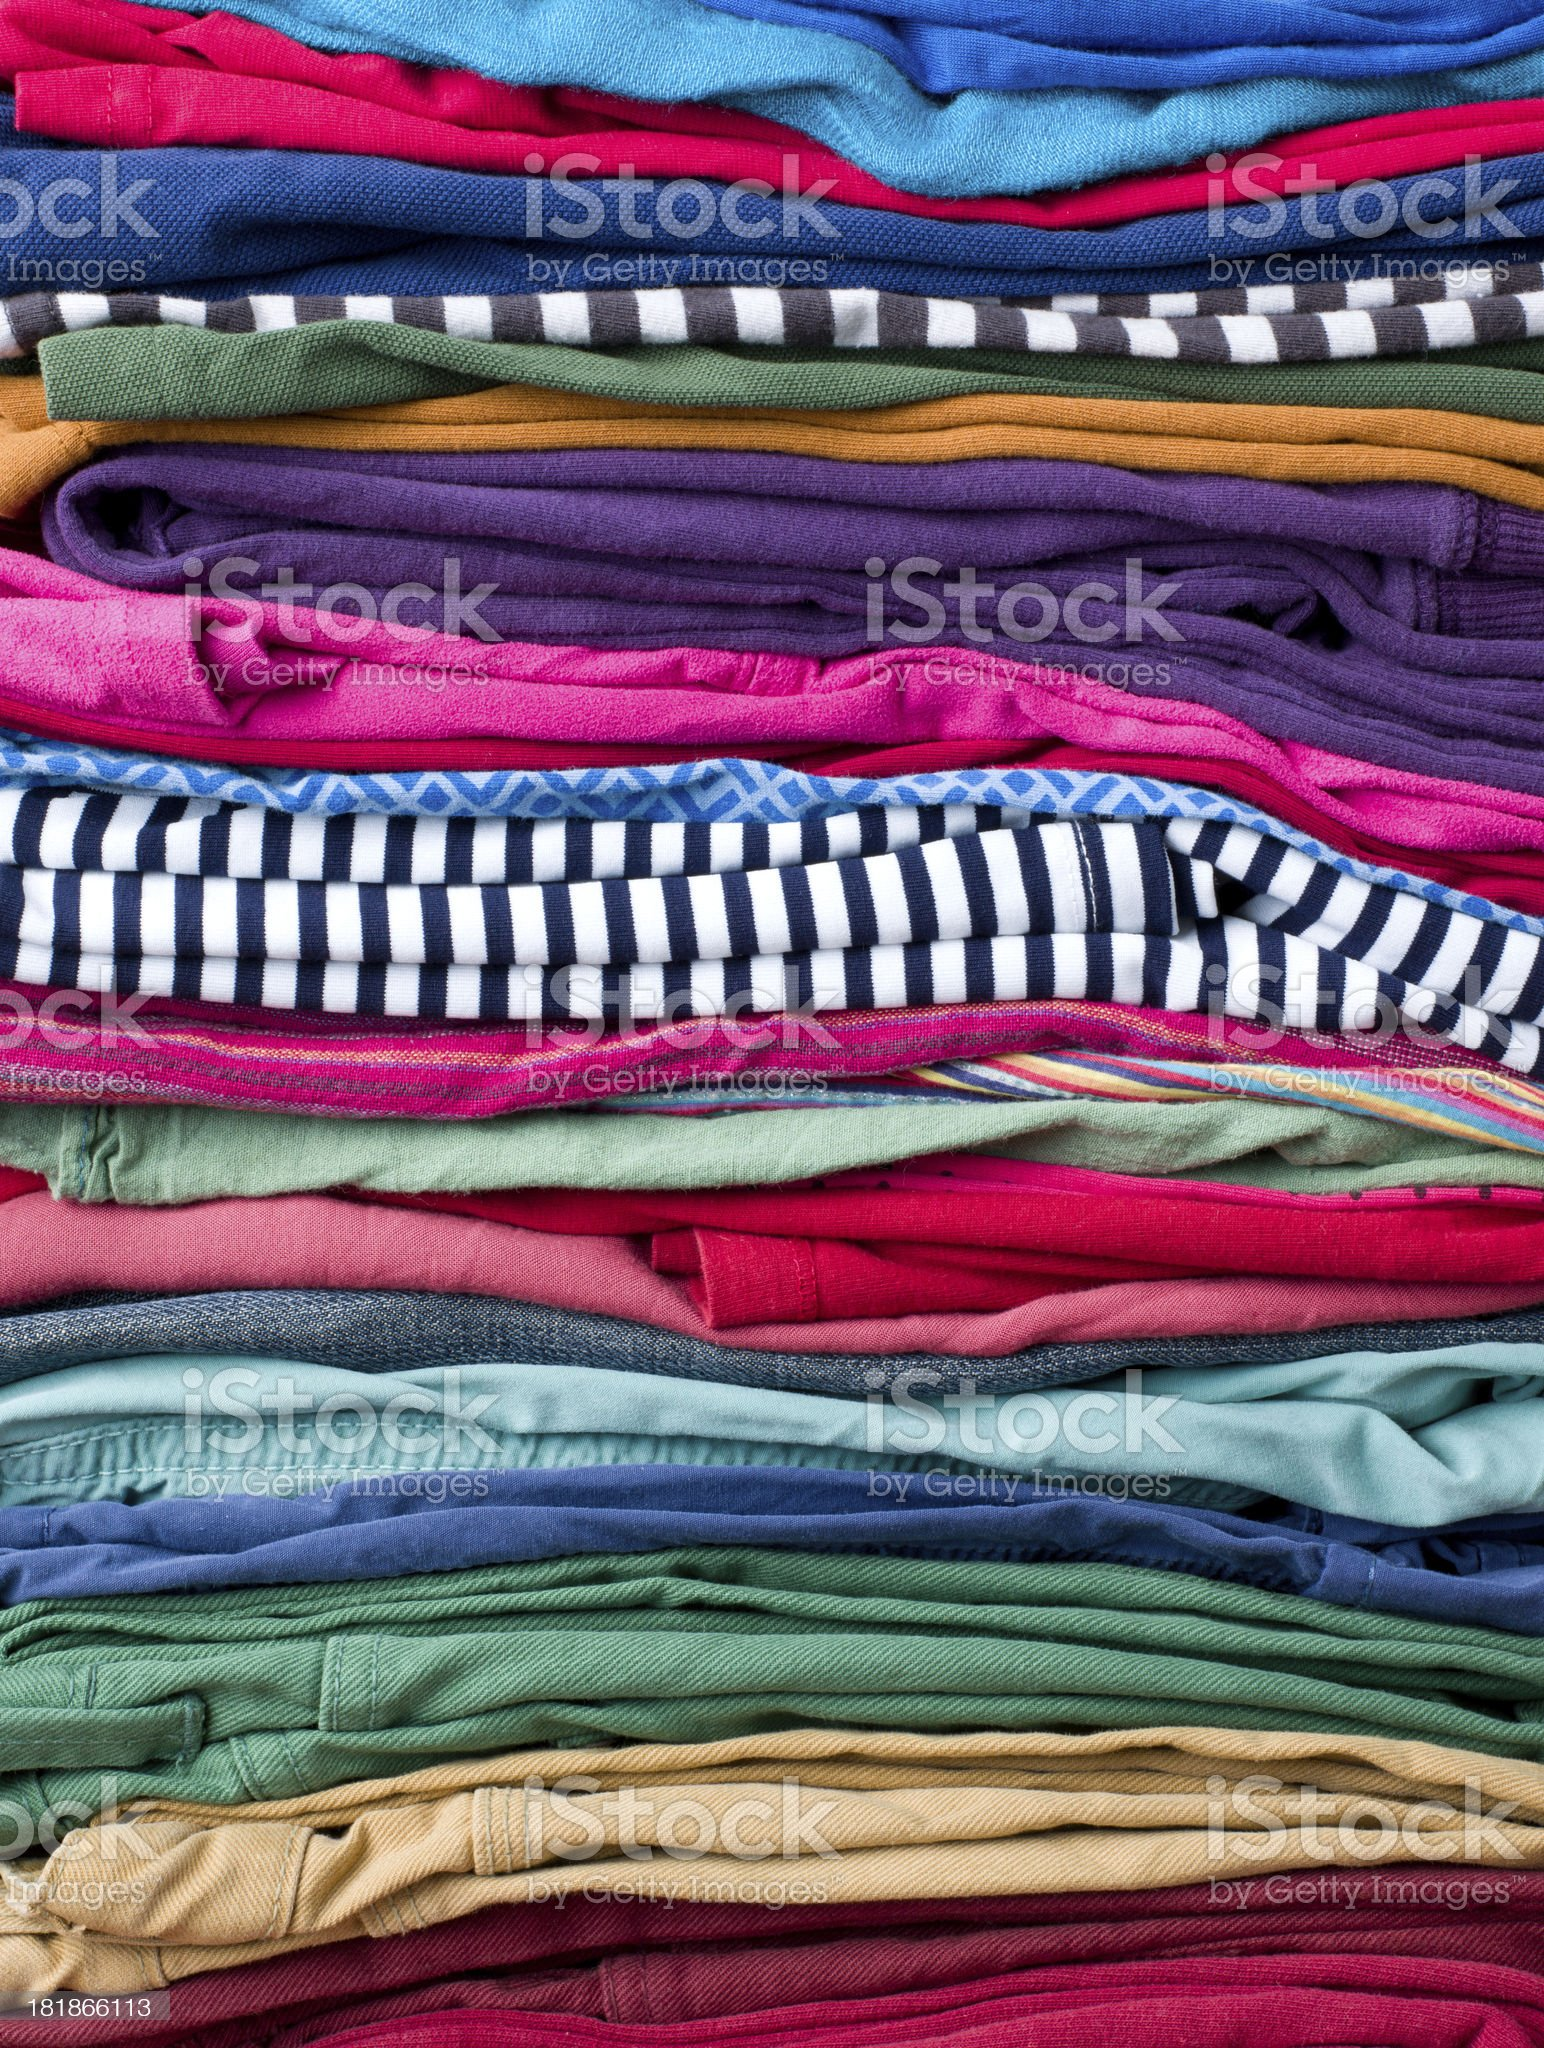 Full Frame Laundry Background royalty-free stock photo